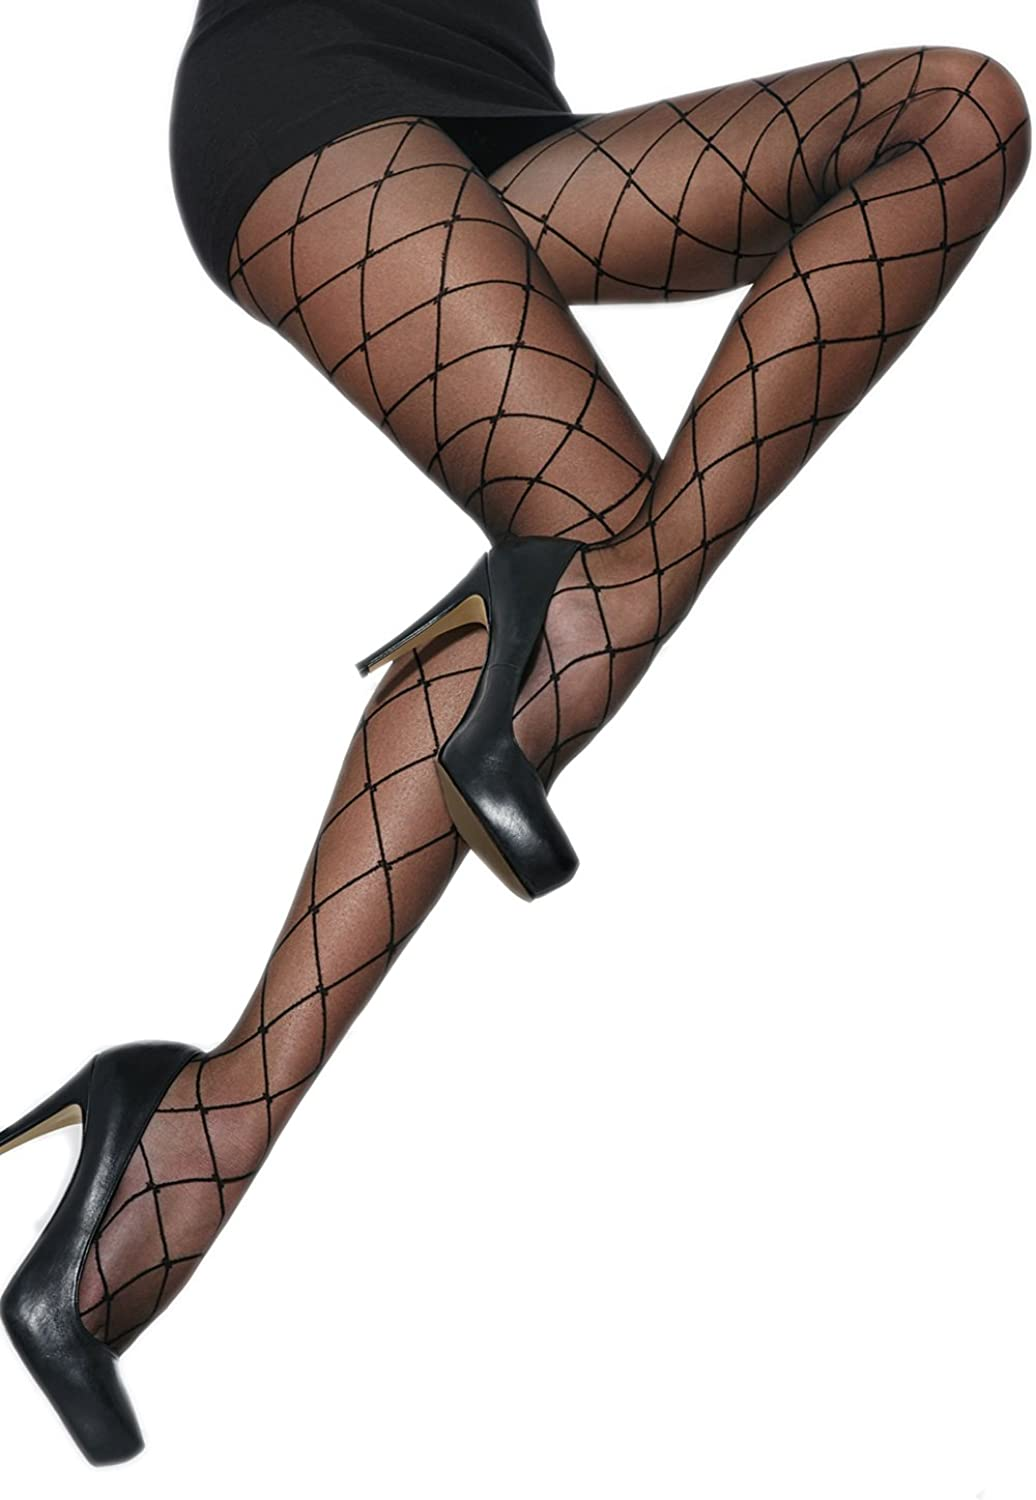 6 XXL XL Adrian Plus Size Patterned Tights Hera 20 DENIIER with Special Comfortable Gusset 5